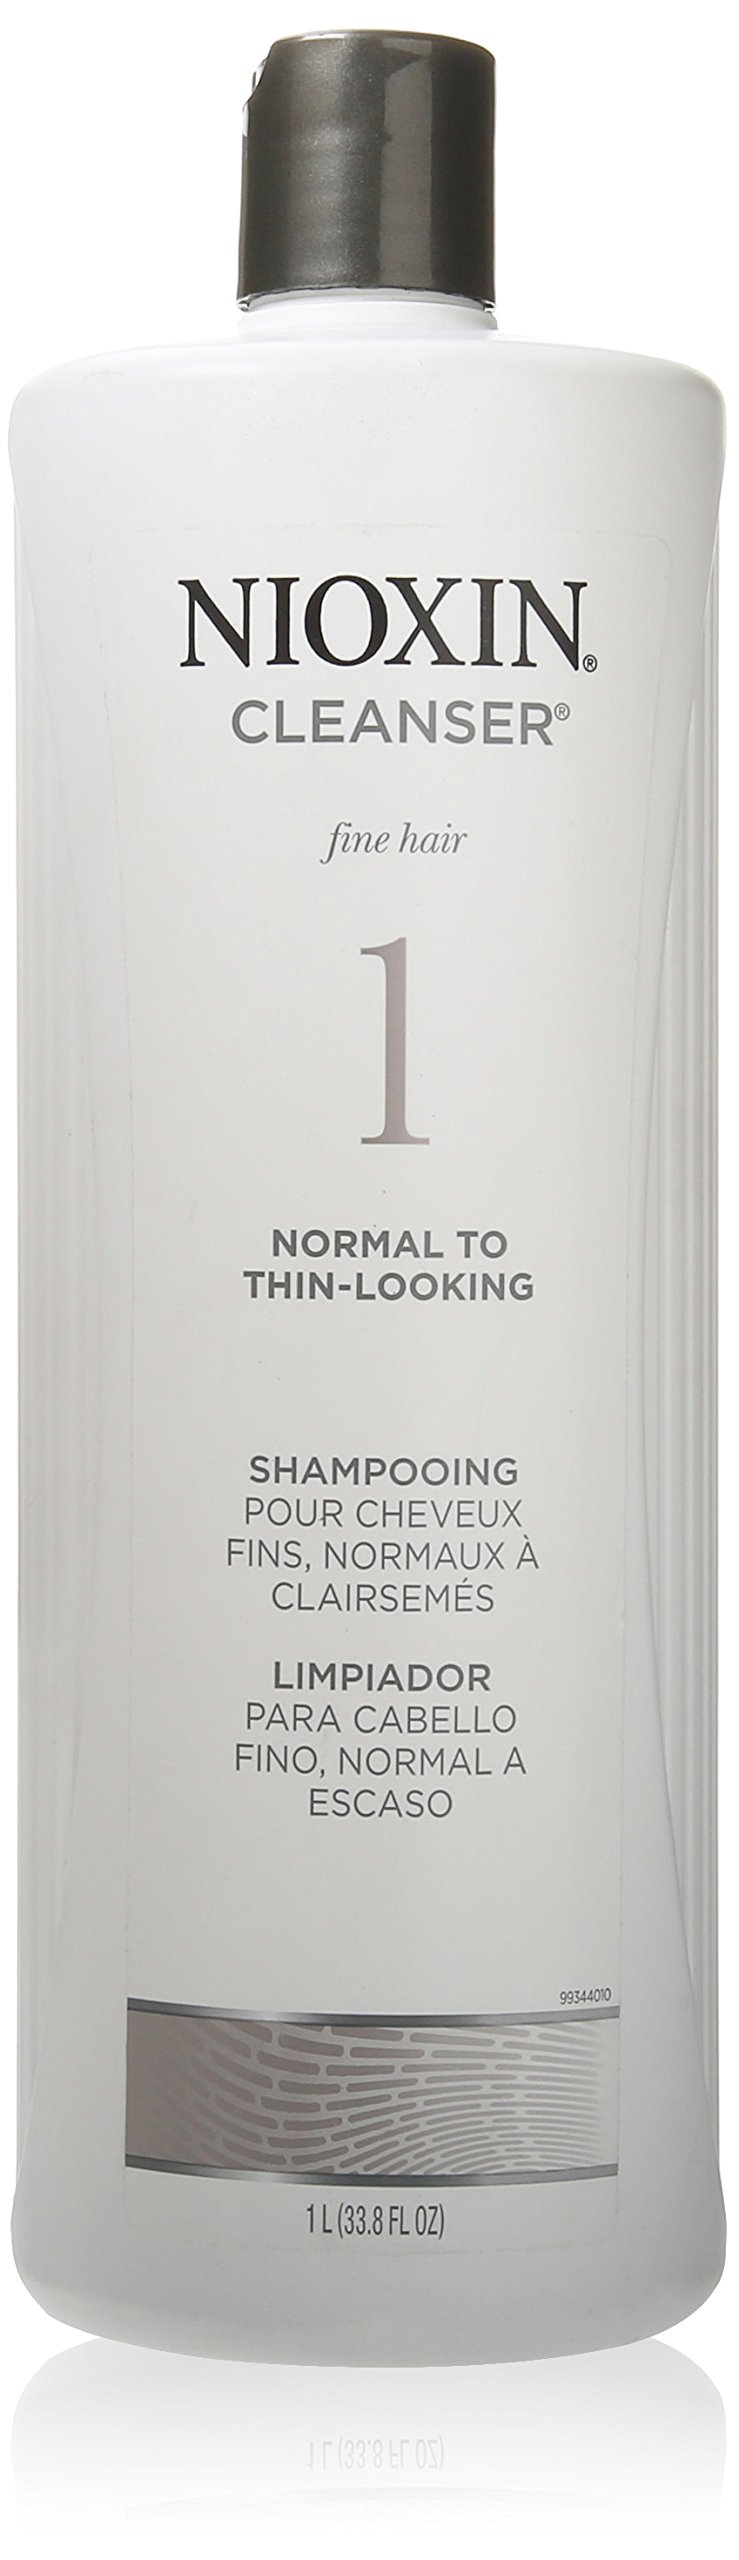 Nioxin Cleanser, System 1 (Fine Hair/Normal to Thin-Looking) Shampoo, 33.8 Ounce